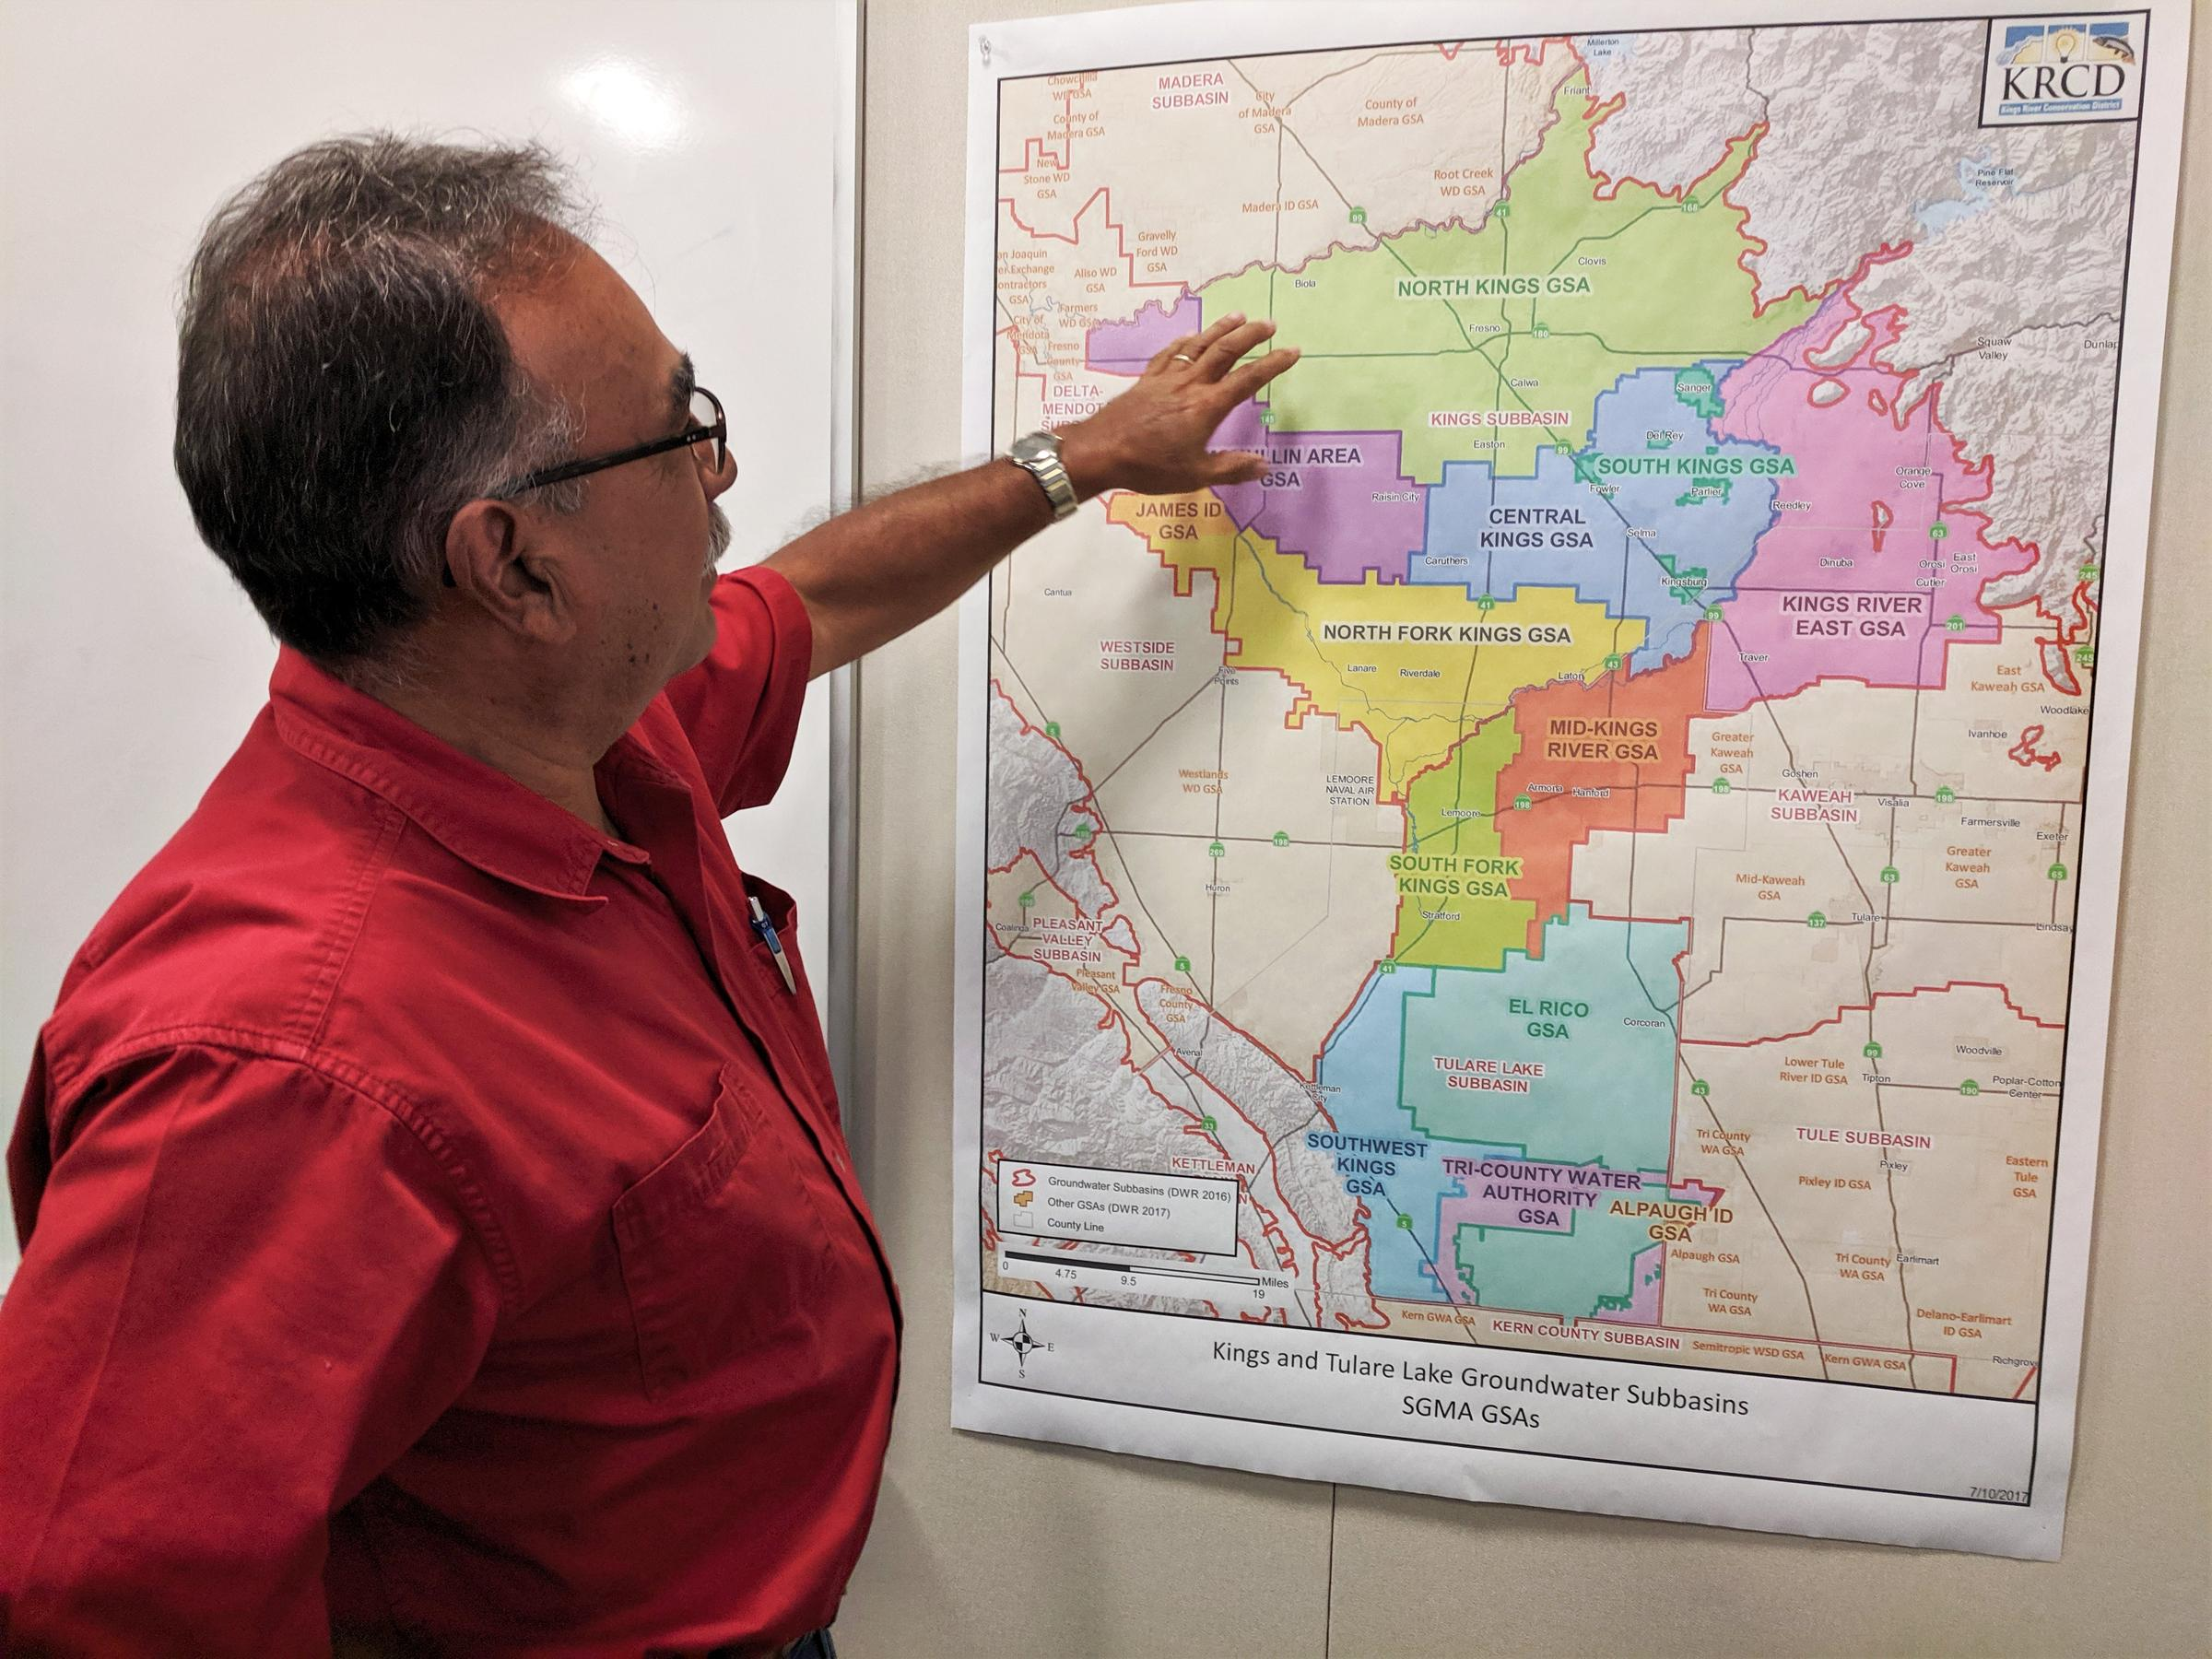 a man gestures to a colored map